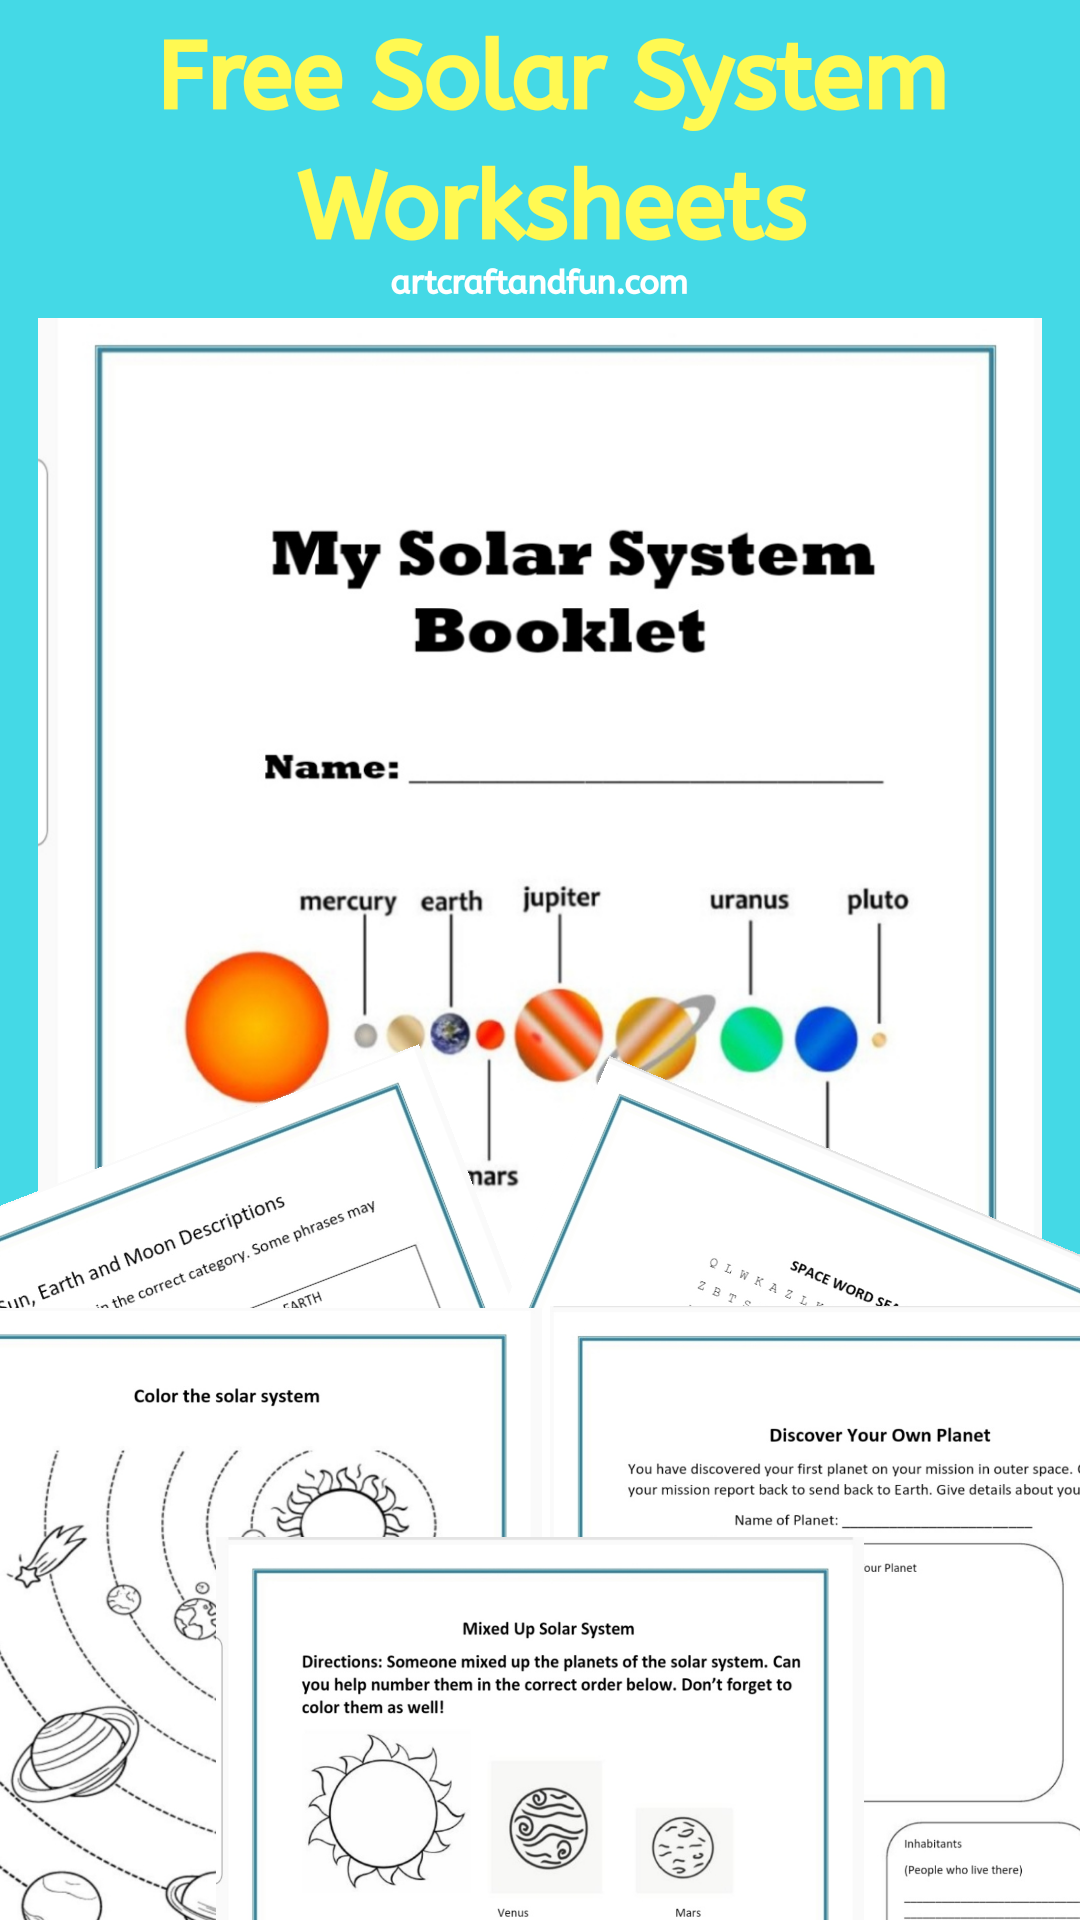 Free Printable Solar System Worksheets For Kids Ages 6 And Up Solar System Worksheets Solar System Lessons Solar System Projects [ 1920 x 1080 Pixel ]